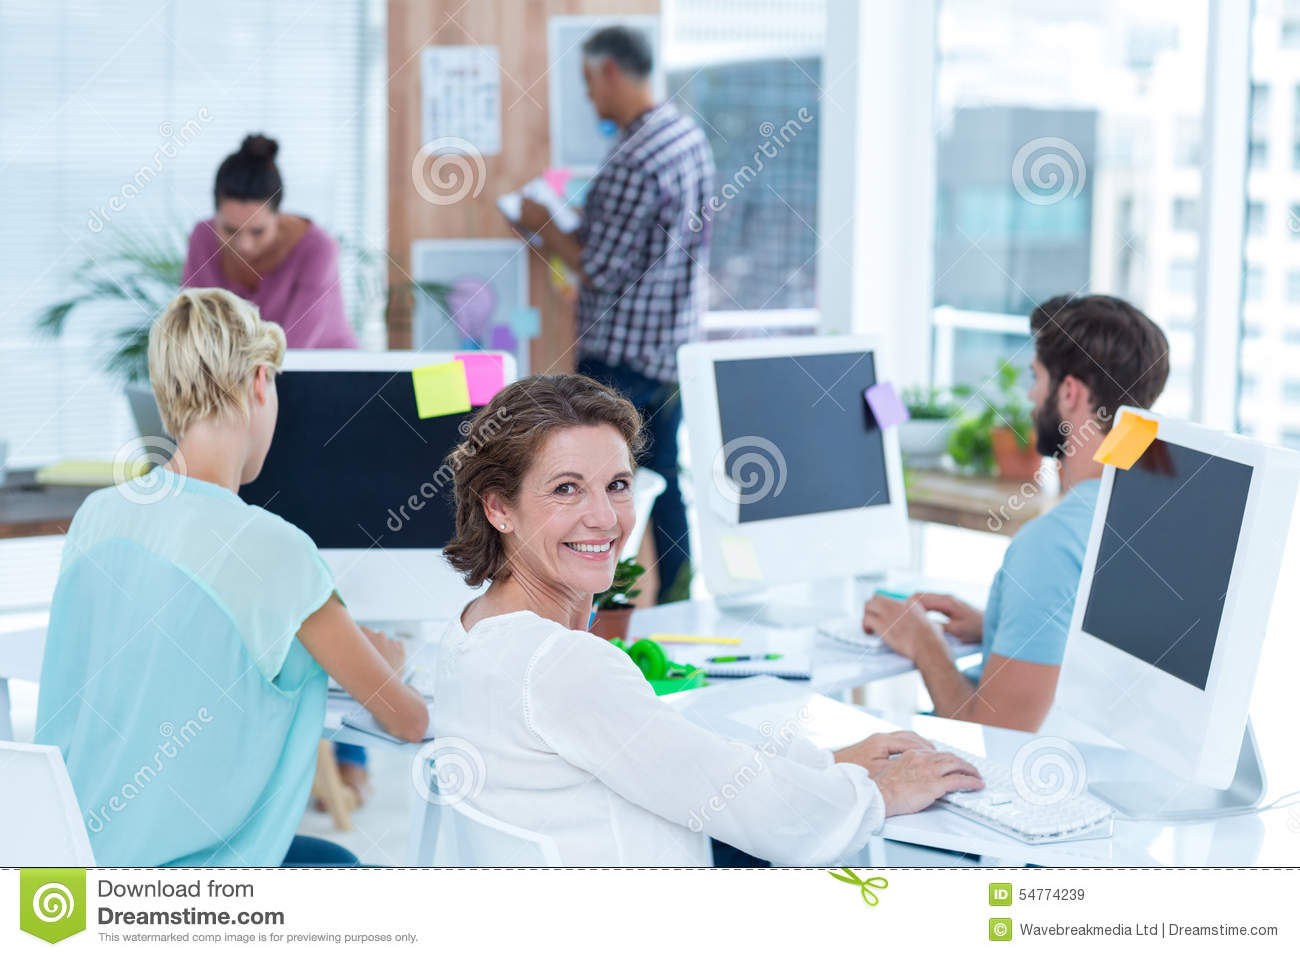 Smiling young woman working with her colleague at desk